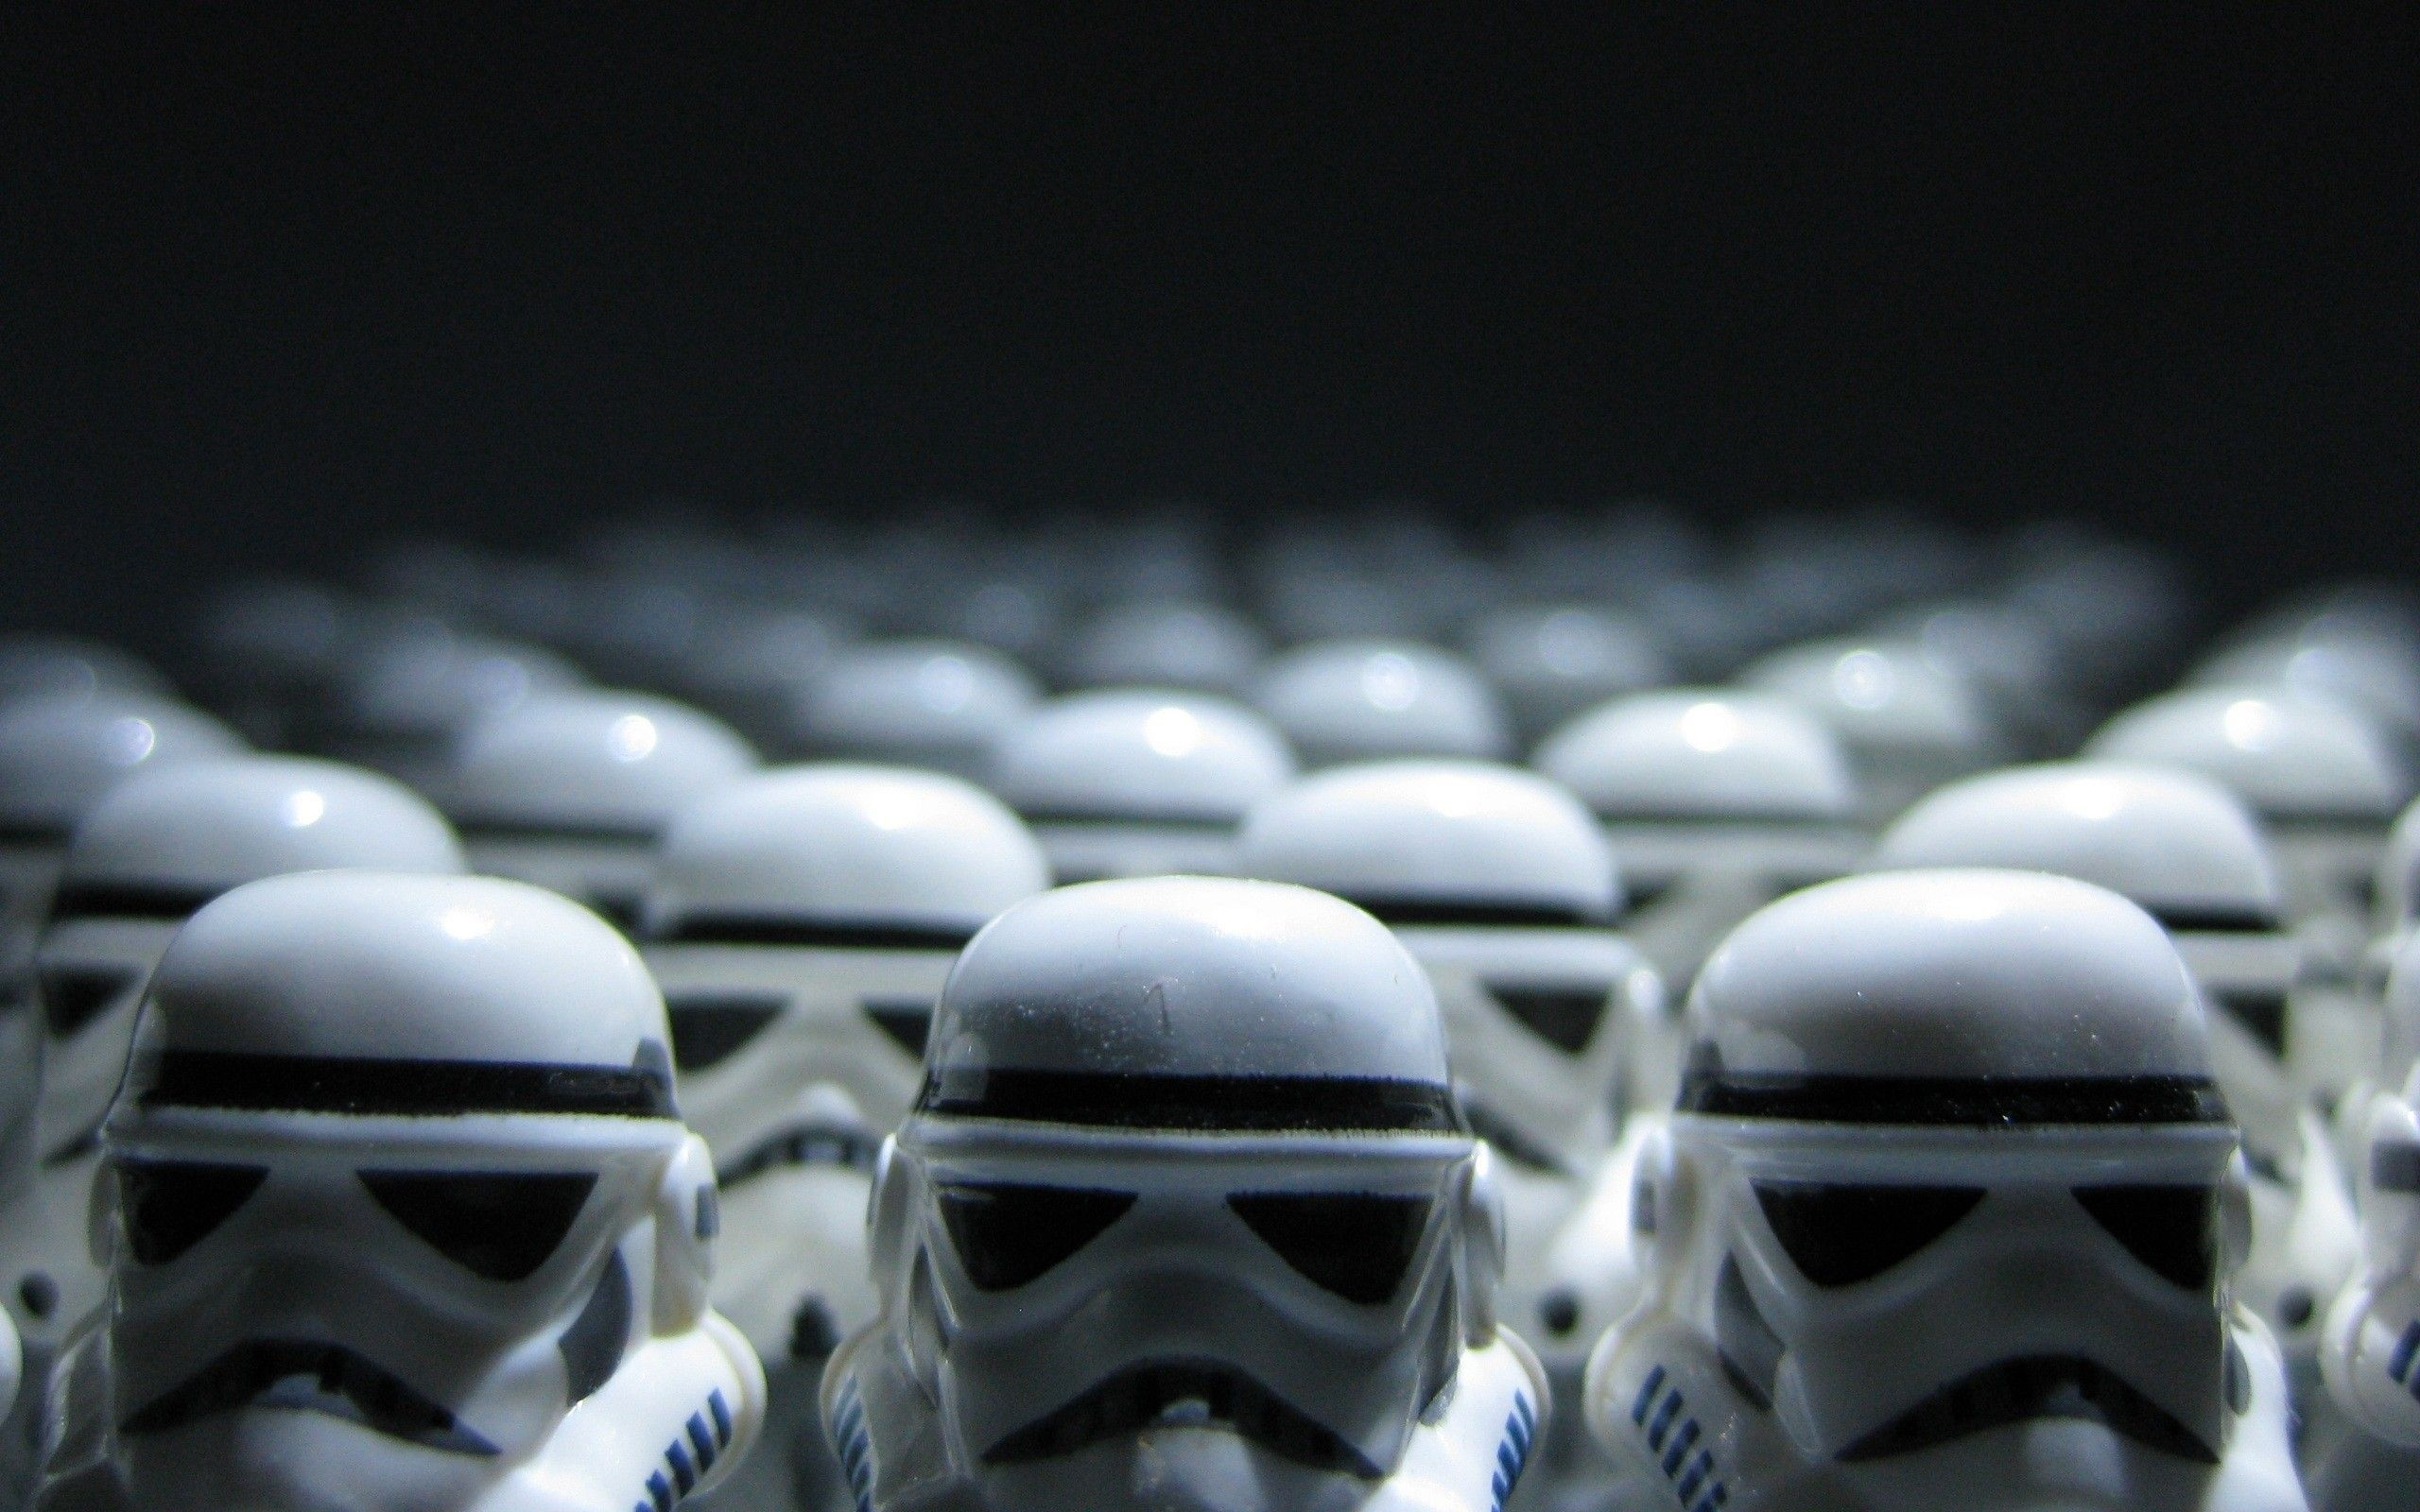 lego star wars wallpapers photo | movies wallpapers | pinterest